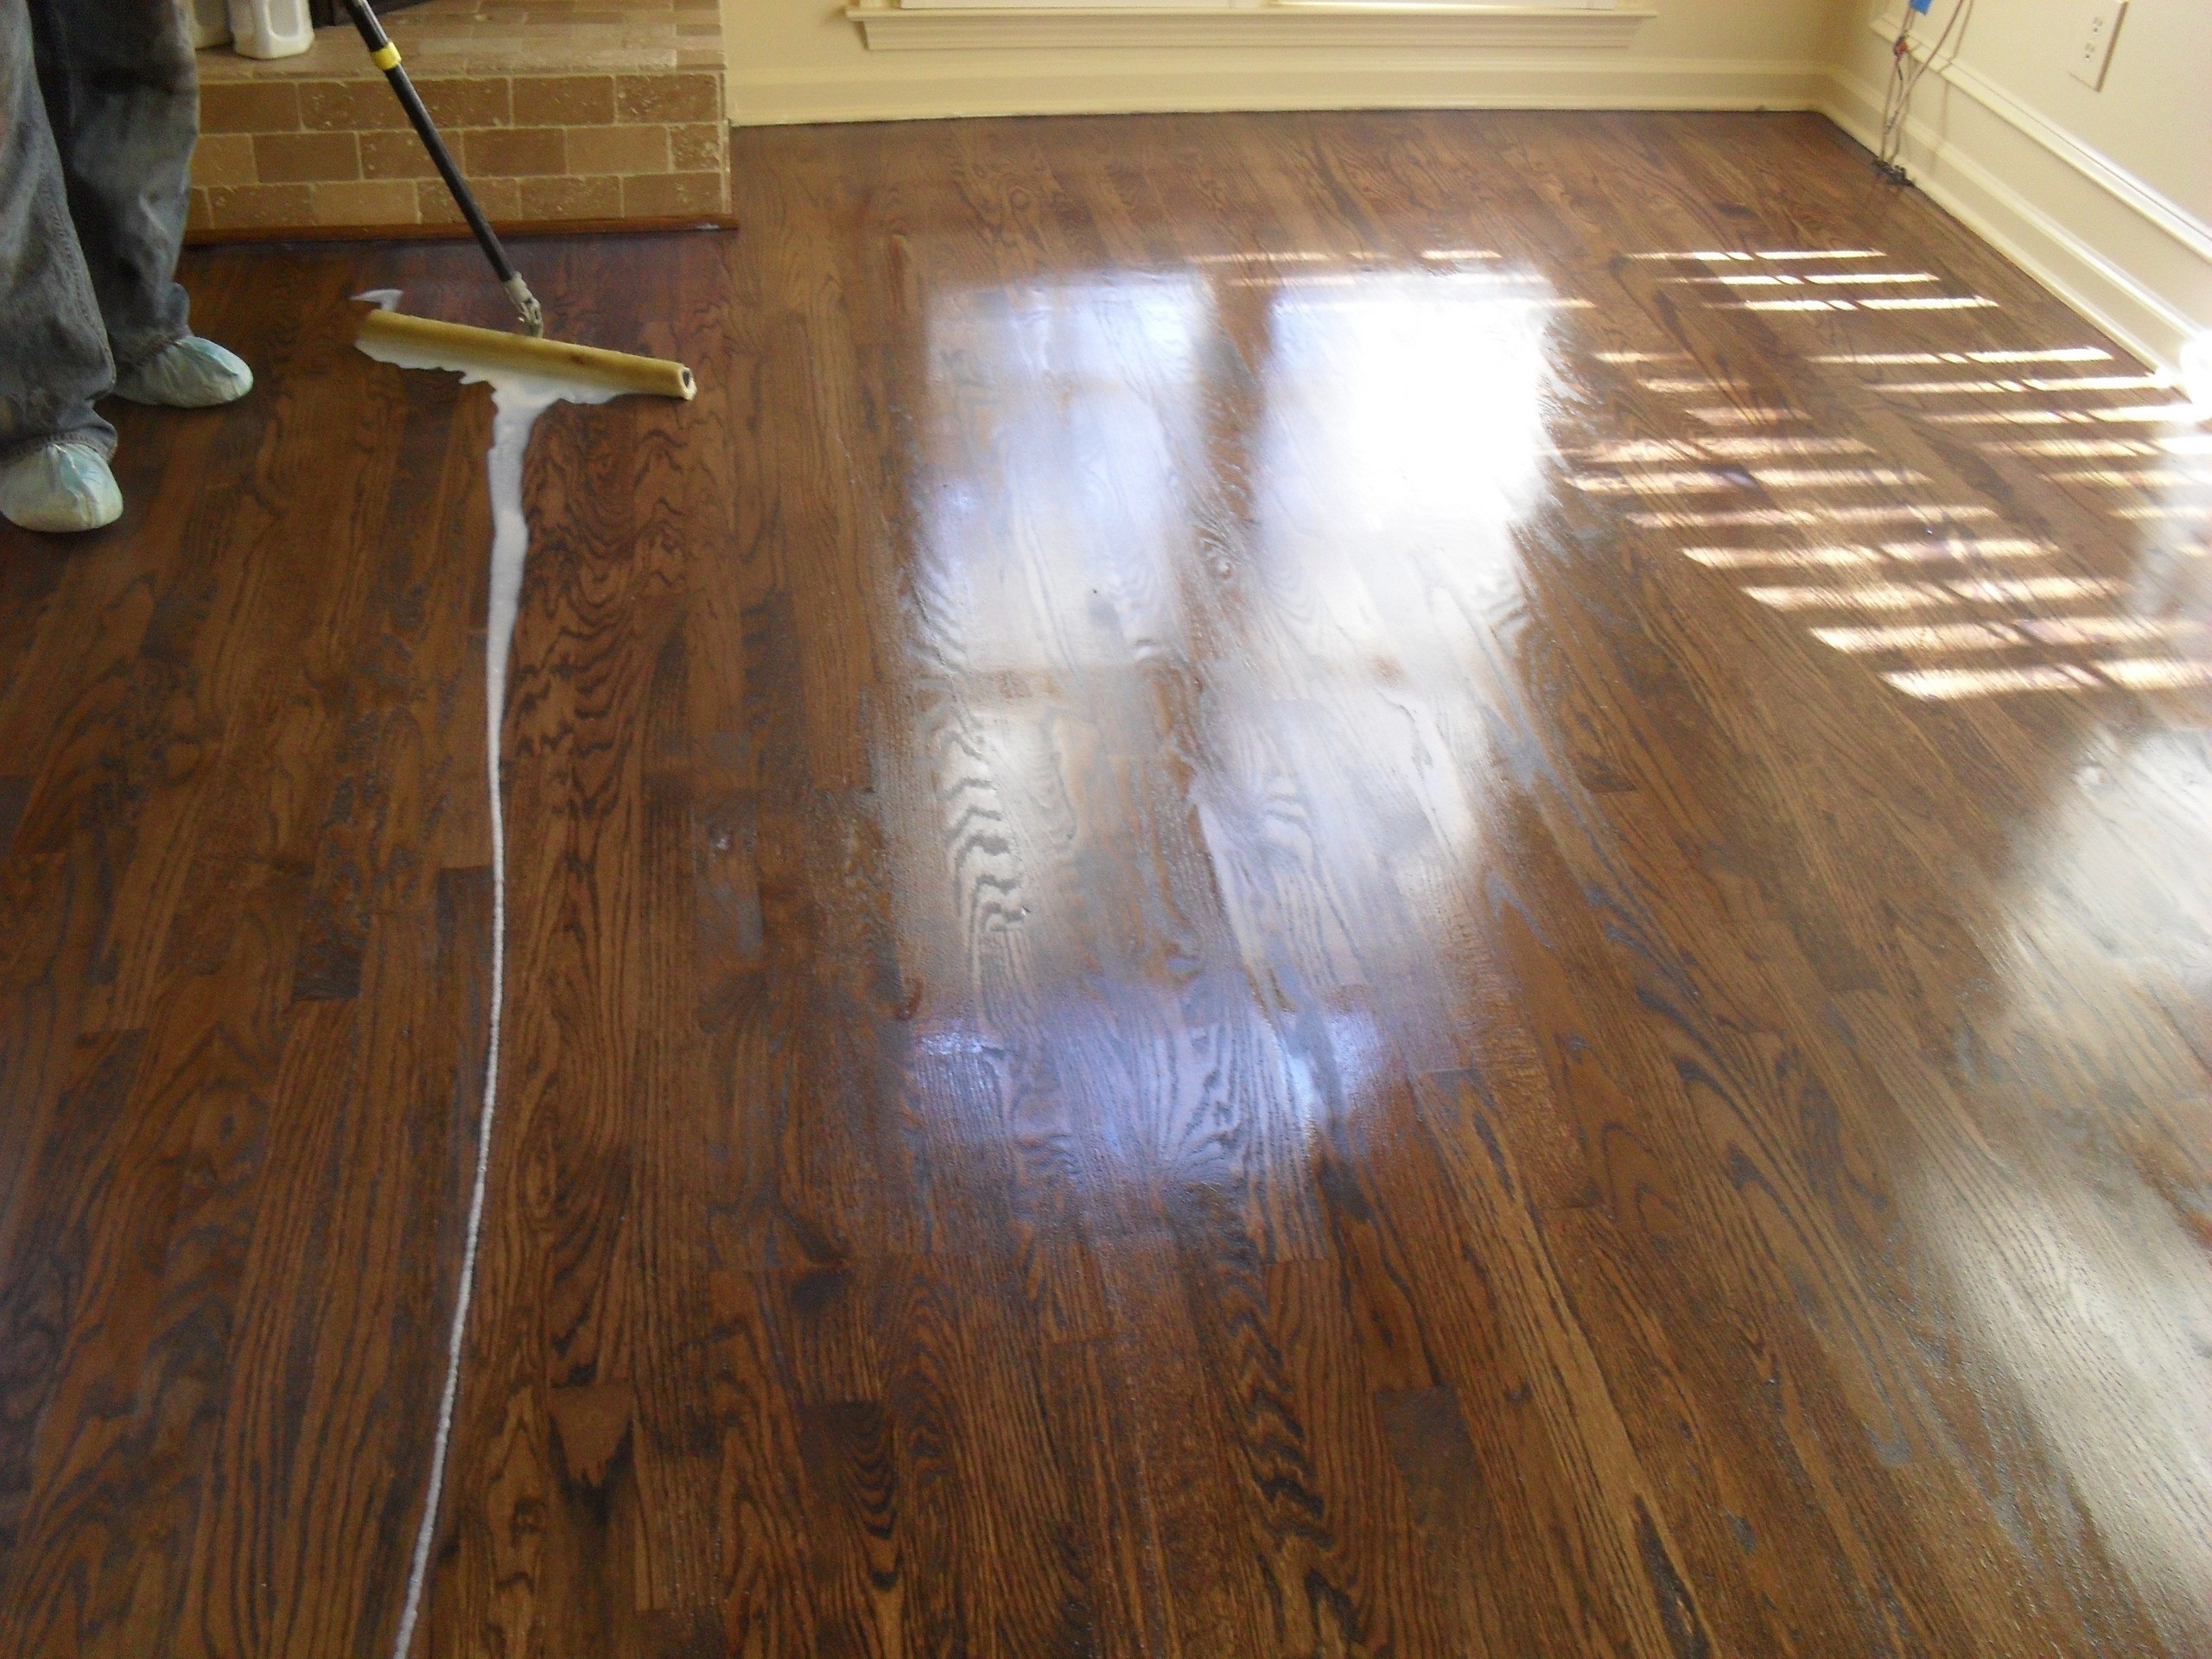 Average Cost to Resurface Hardwood Floors Of 19 Unique How Much Does It Cost to Refinish Hardwood Floors Gallery Inside How Much Does It Cost to Refinish Hardwood Floors Unique Wood Floor Wallpapers Group 76 Photos